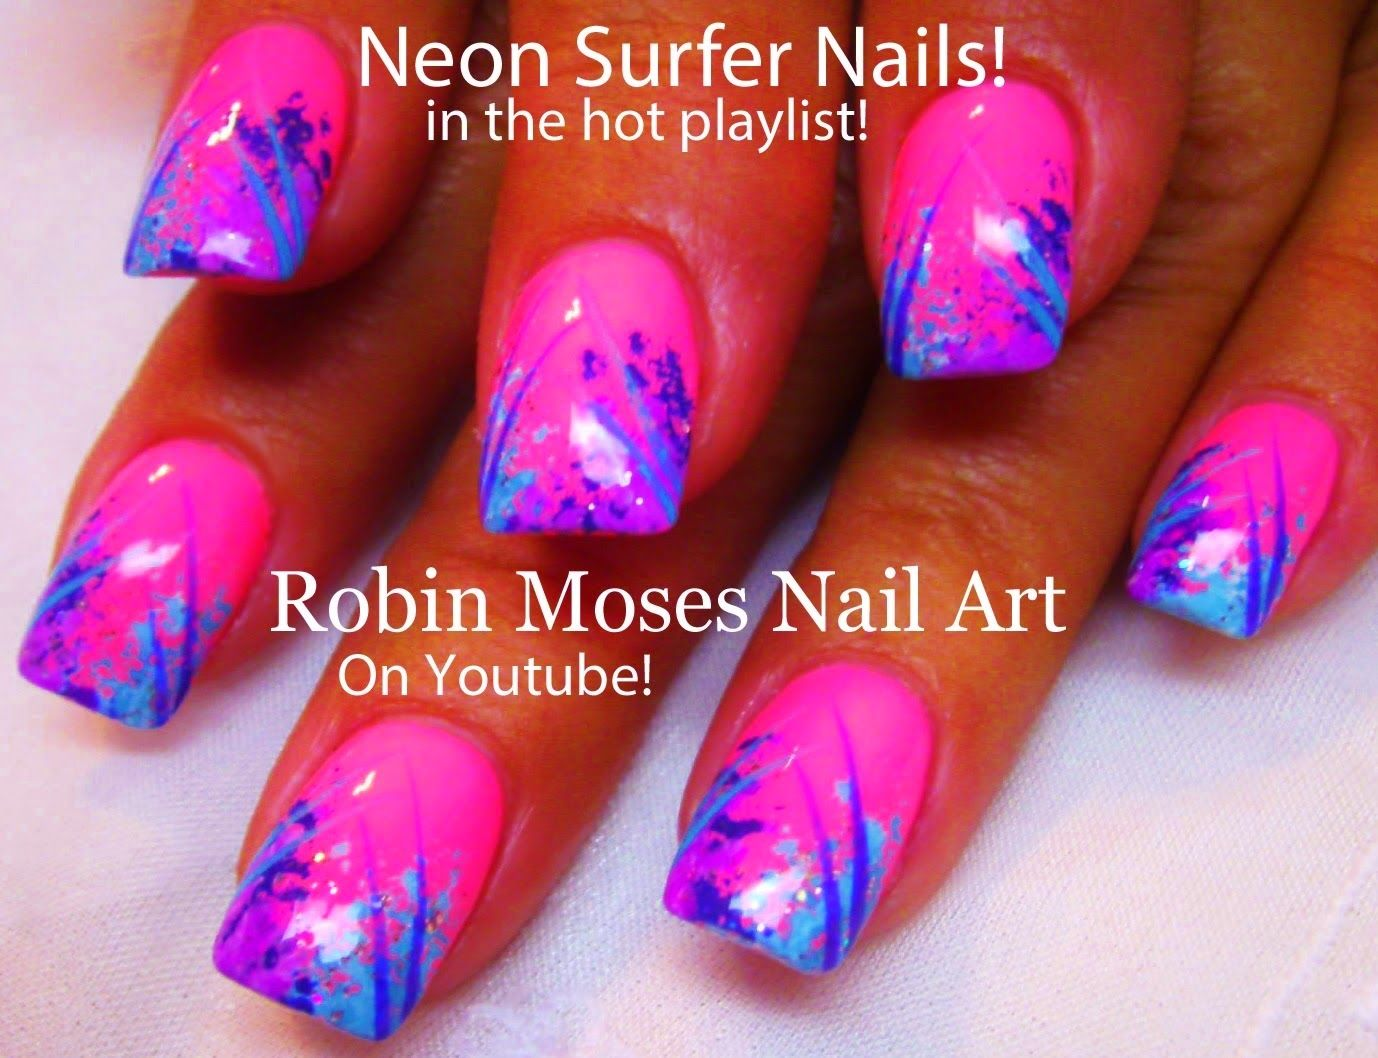 Here Are My DIY Neon Pink Sponge Nail Art Designs And Tutorials For NAILS  At The Next Level! From DIY Easy Nail Art Designs For Beginners, To.